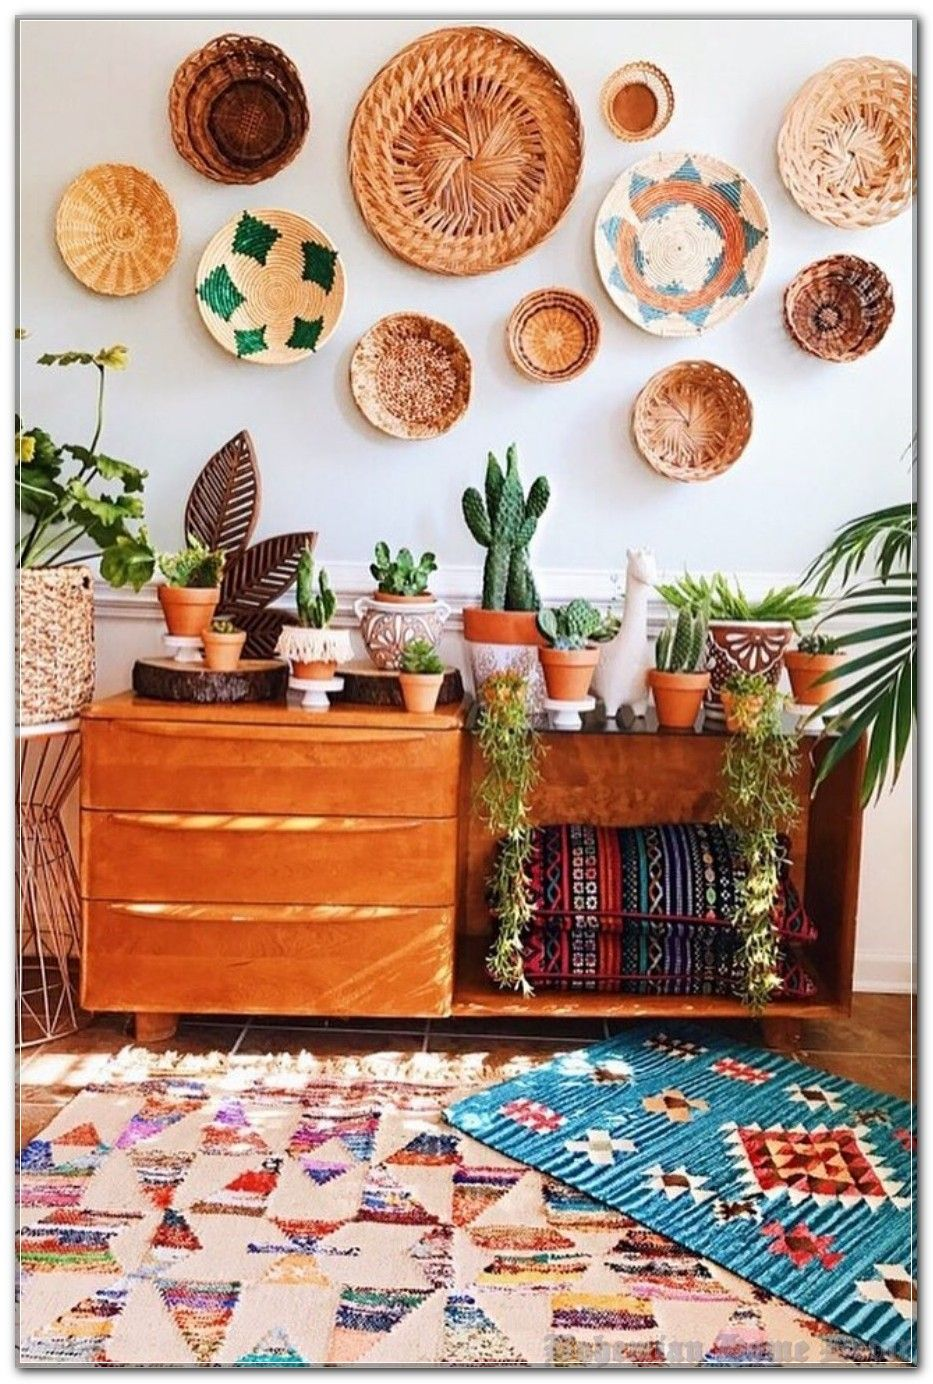 Bohemian Home Decor Shortcuts – The Easy Way